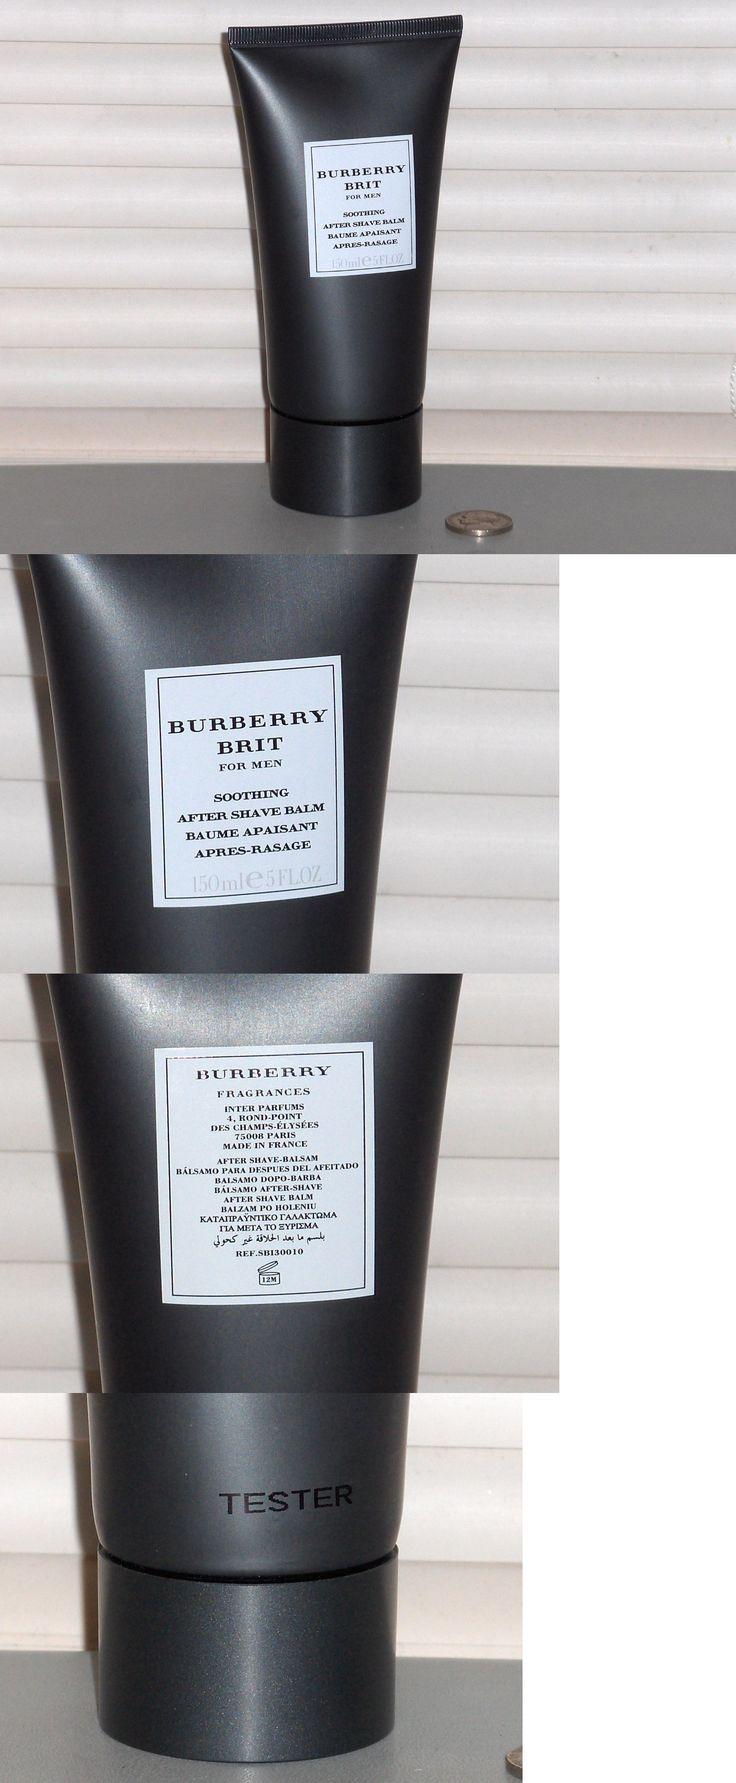 Aftershave and Pre-Shave: Burberry Brit For Men, Soothing After Shave Balm, Aftershave, 5 Oz., 150 Ml, New BUY IT NOW ONLY: $48.95